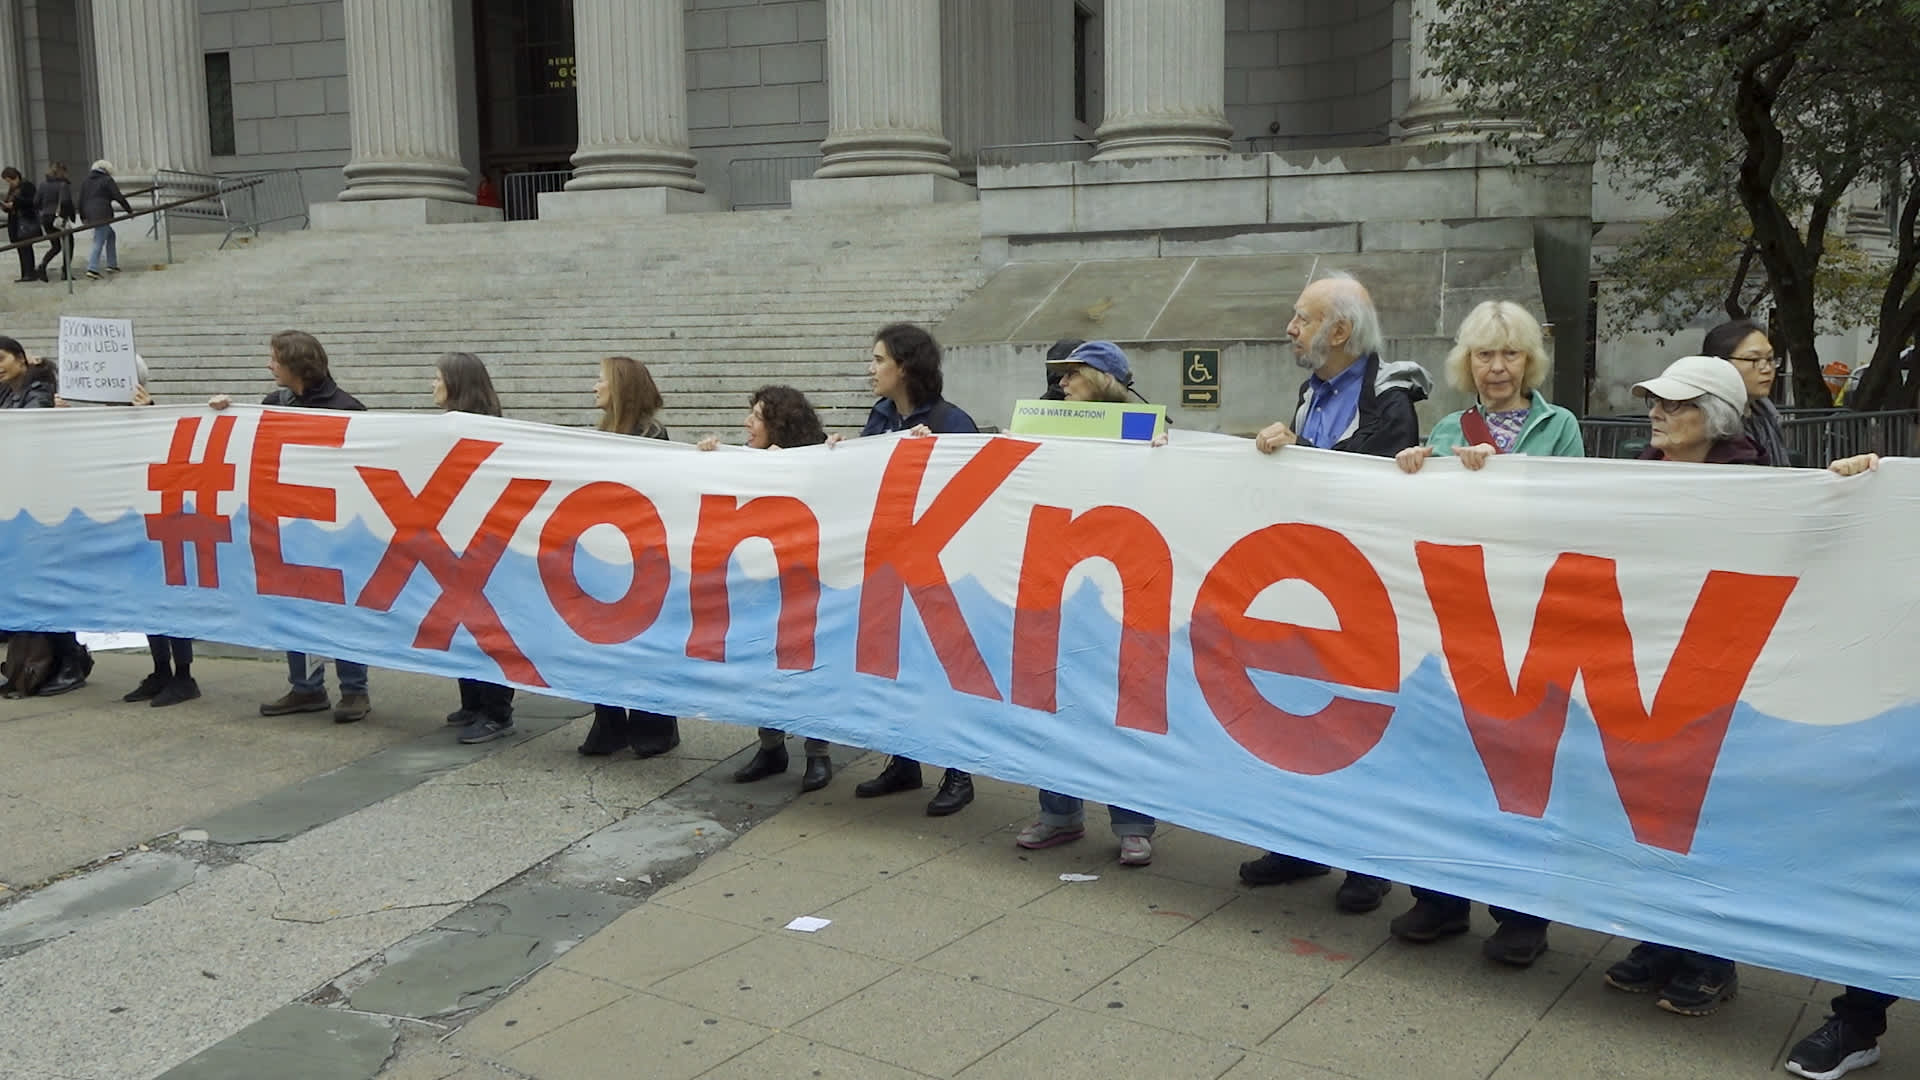 People protest against ExxonMobil before the start of its trial outside the New York State Supreme Court building on October 22, 2019